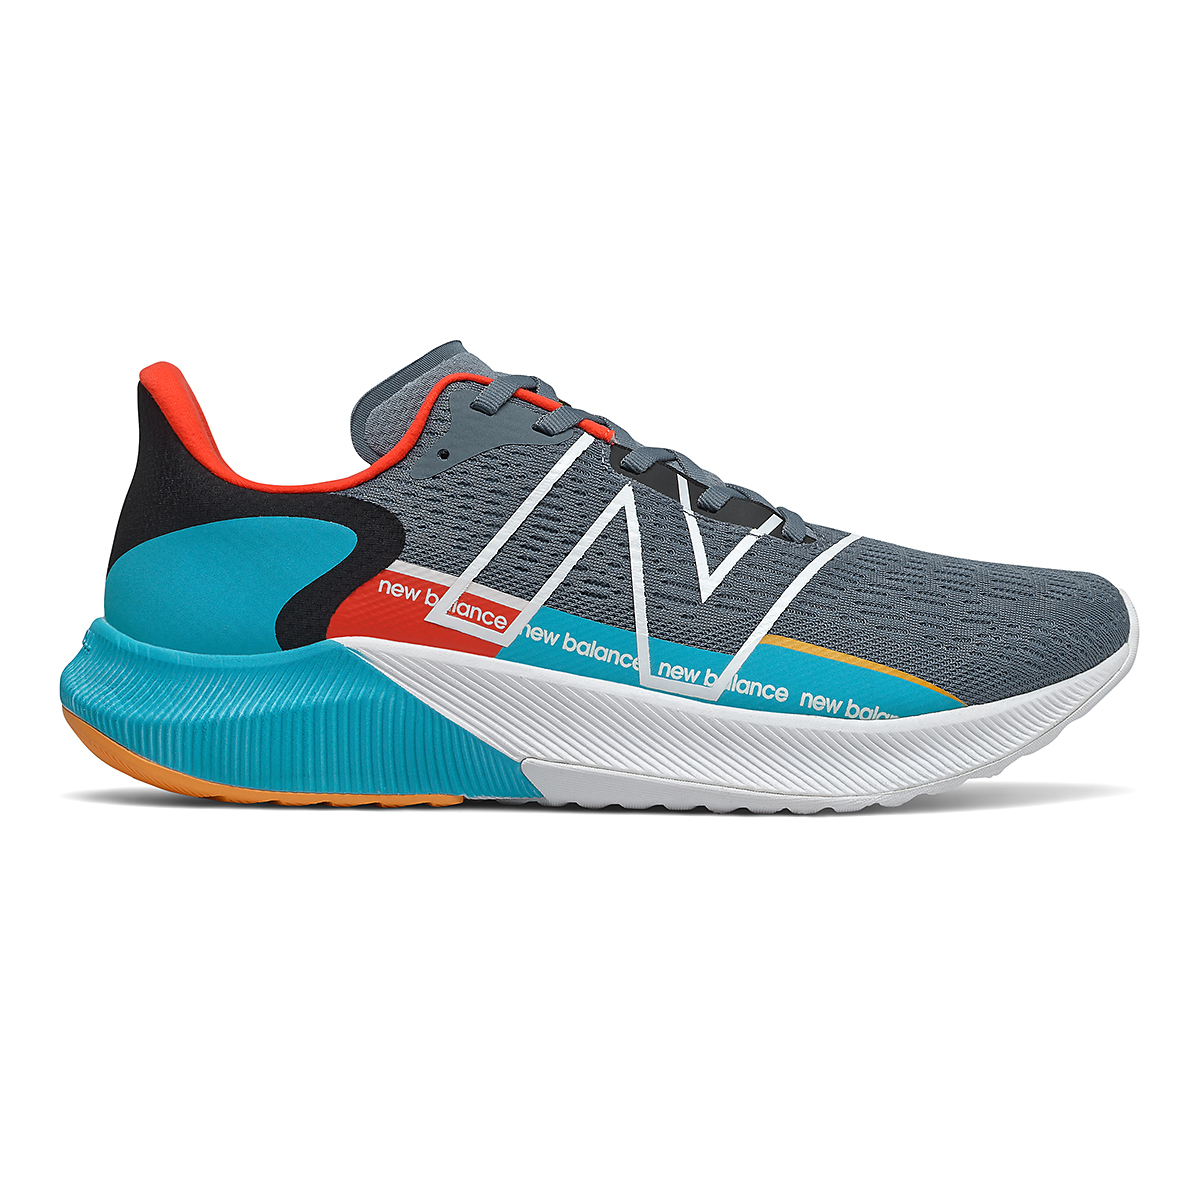 Men's New Balance Fuelcell Propel V2 Running Shoe - Color: Ocean Grey/Virtual Sky/Ghost Pepper - Size: 7 - Width: Regular, Ocean Grey/Virtual Sky/Ghost Pepper, large, image 1